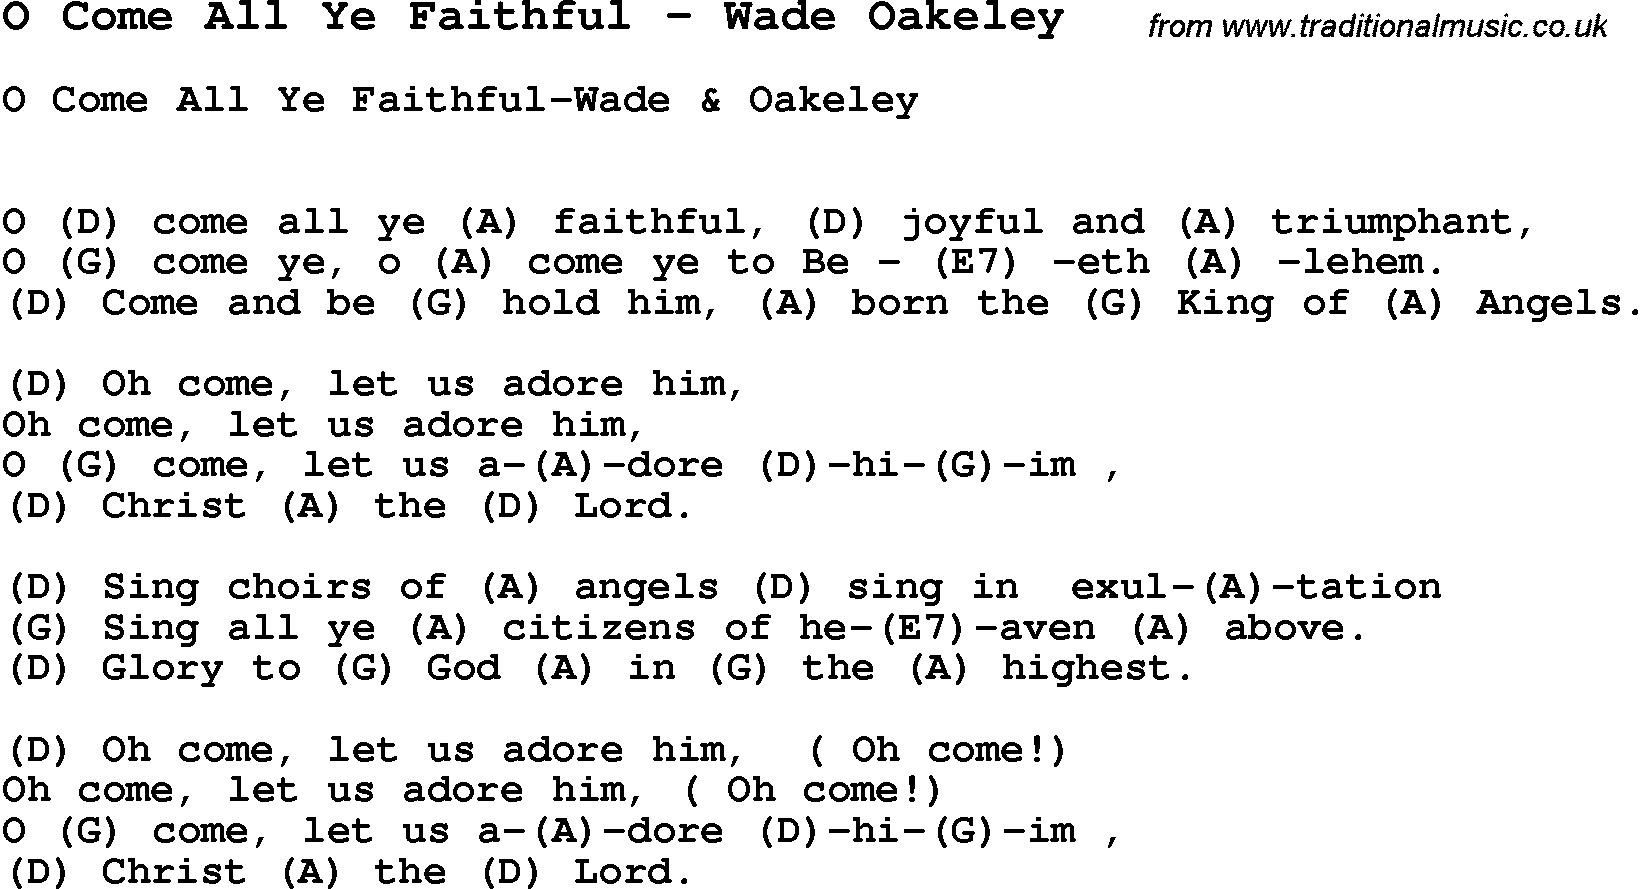 Song O Come All Ye Faithful By Wade Oakeley Song Lyric For Vocal